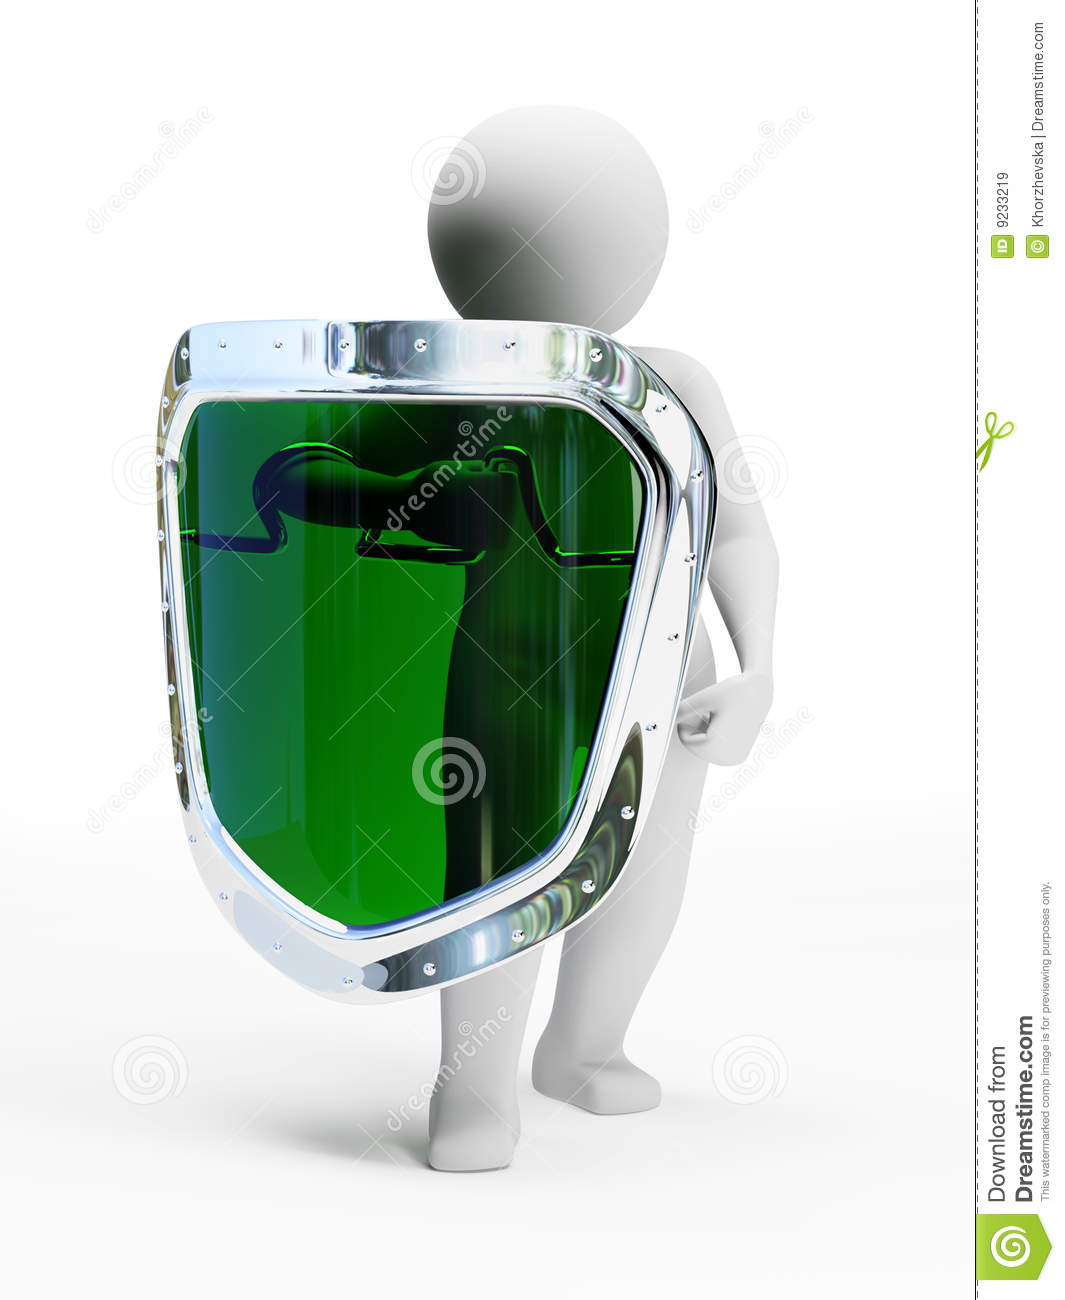 3d abstract security person with green shield royalty free stock images image 9233219. Black Bedroom Furniture Sets. Home Design Ideas